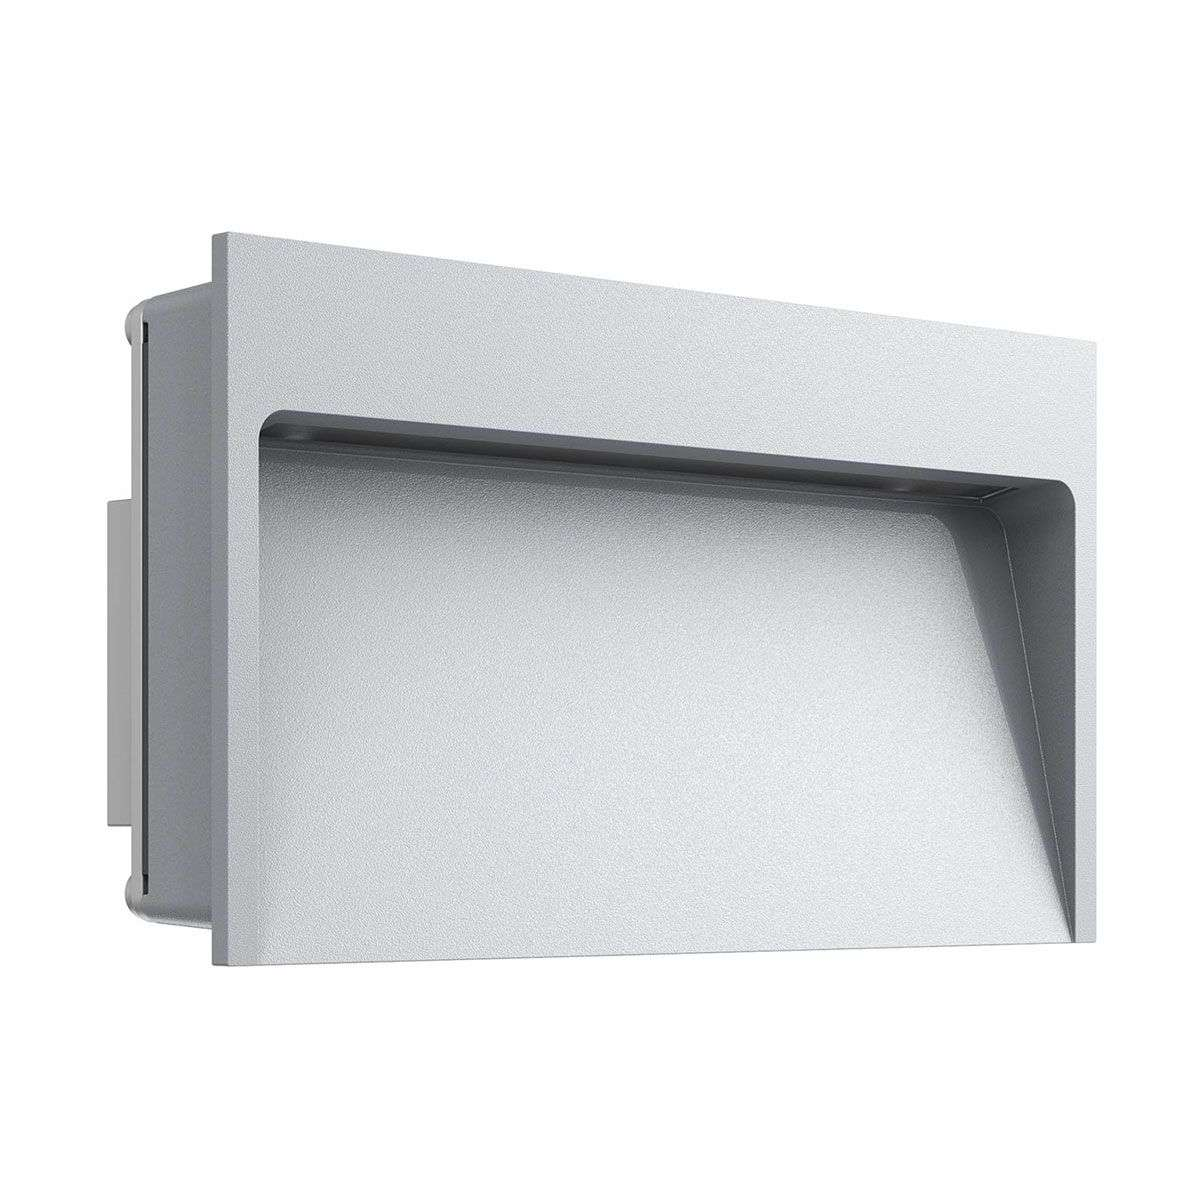 Wide led recessed wall light my way lights wide led recessed wall light my way 3510418x 31 aloadofball Image collections